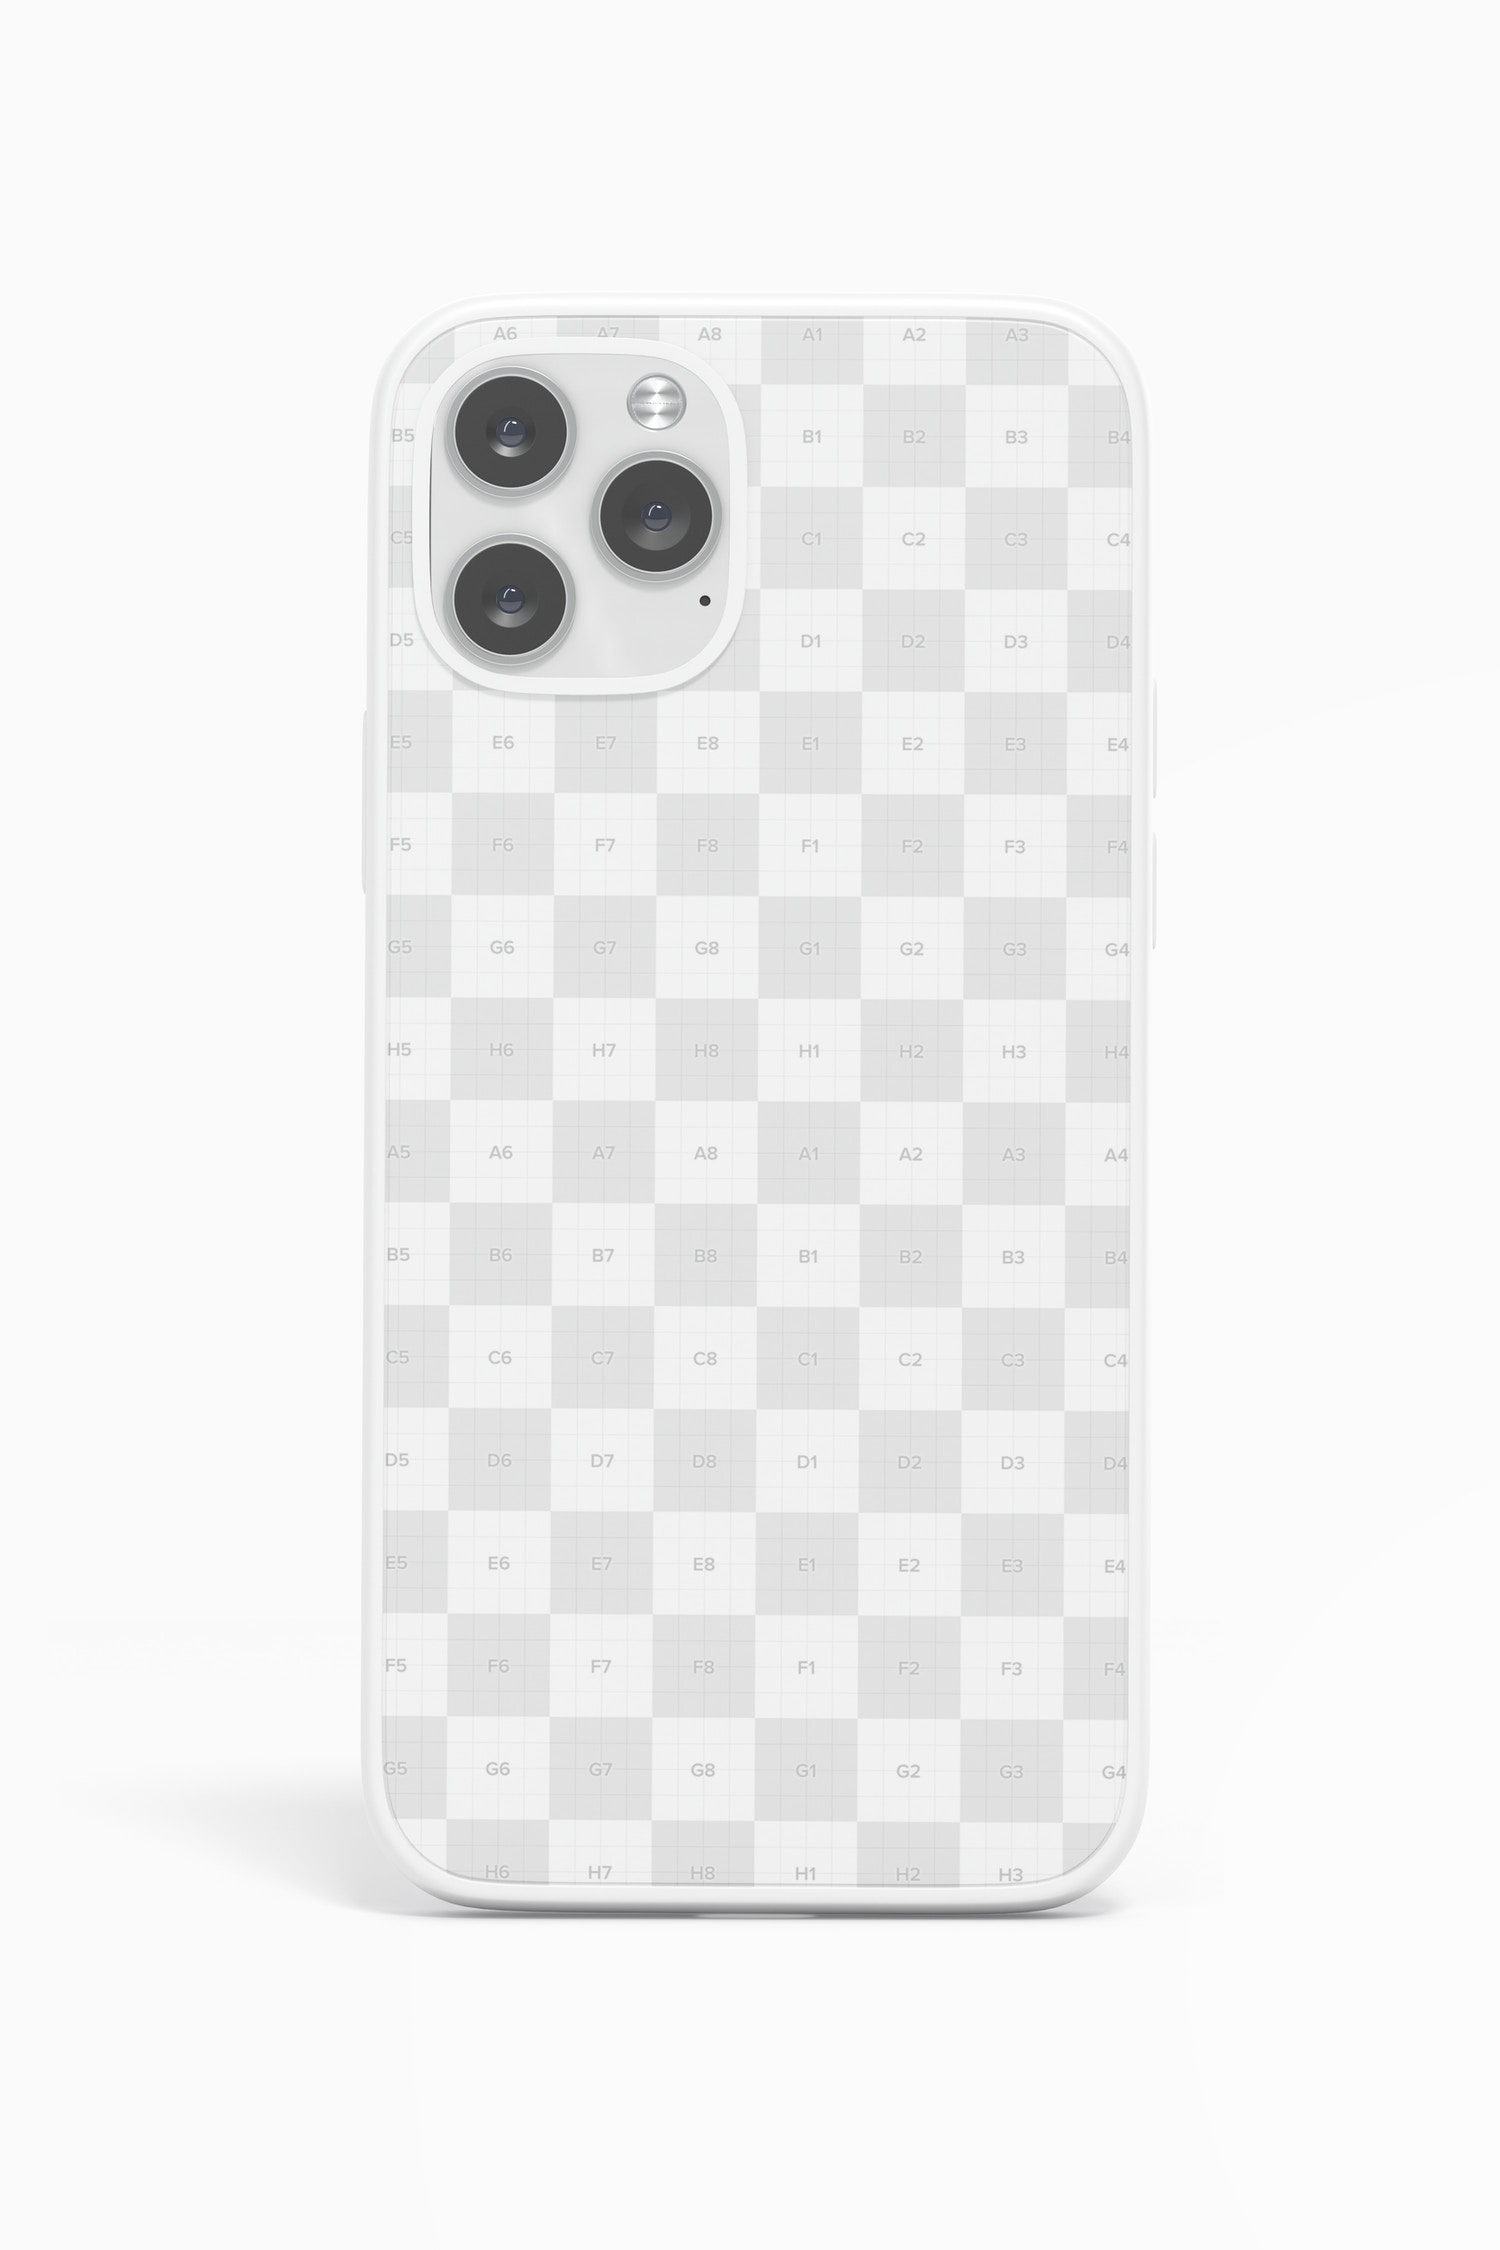 The checker board pattern shows where you can place your design.